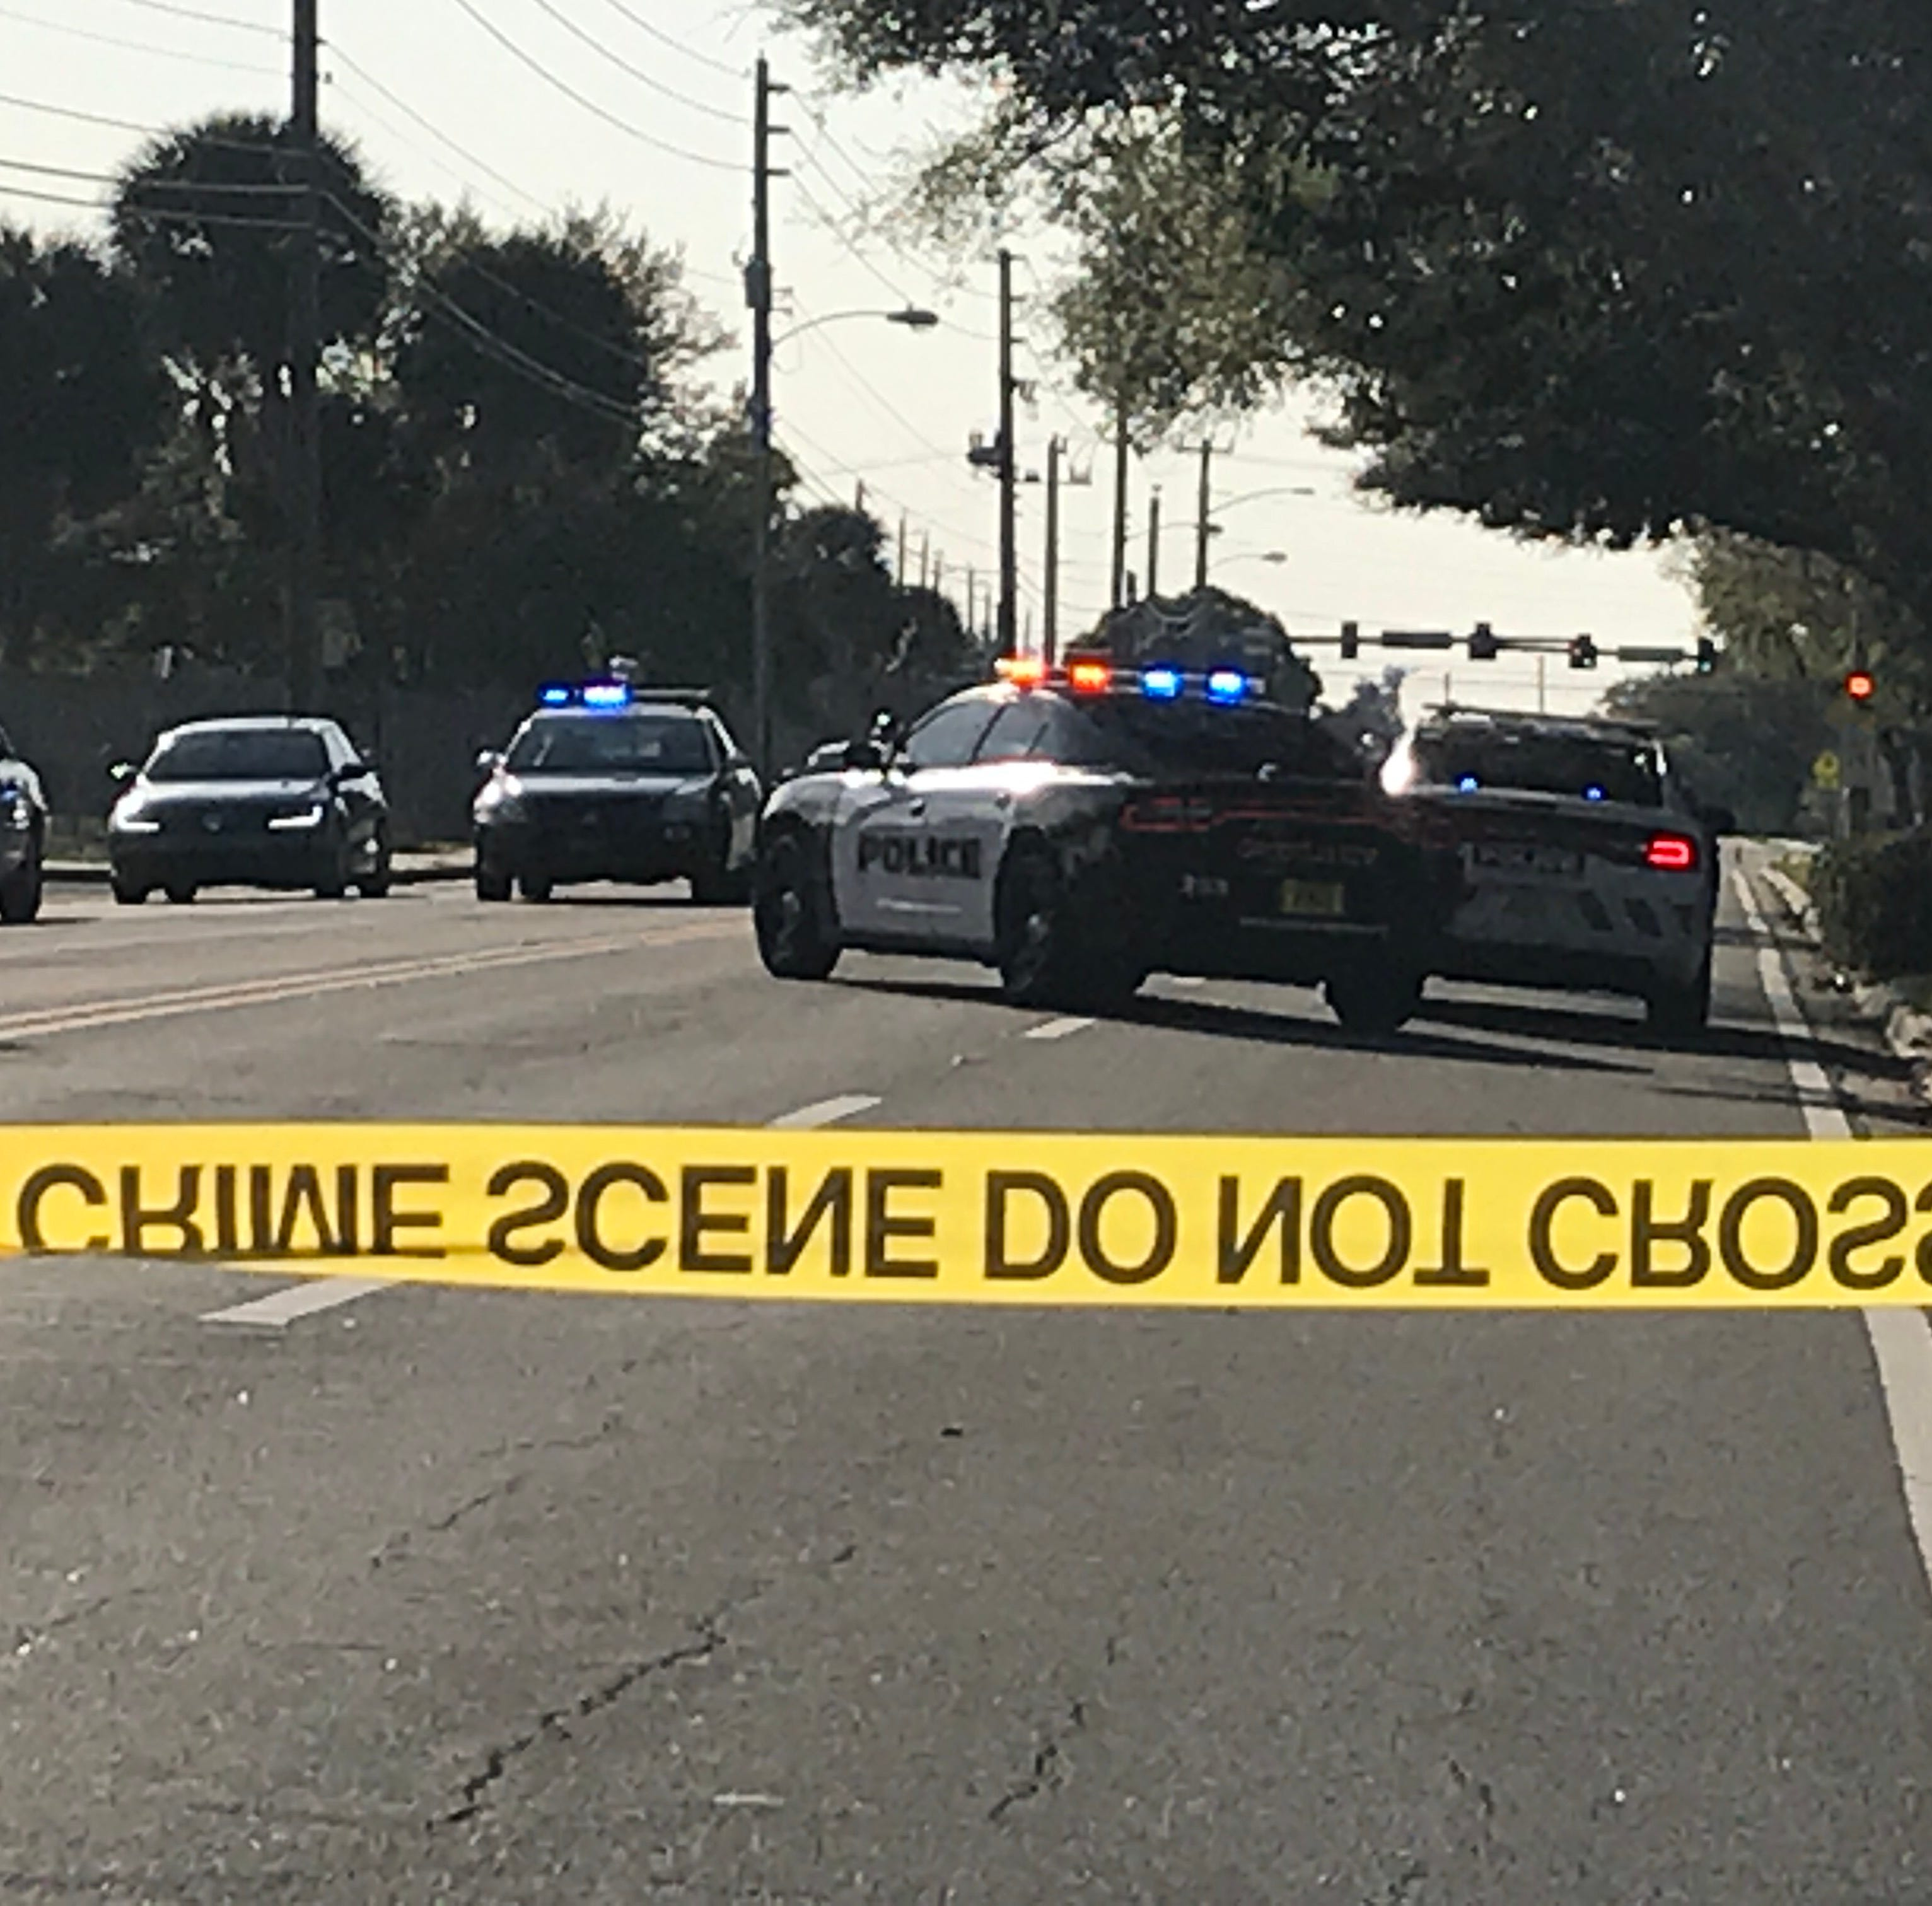 Two people shot near middle school in Melbourne; police searching for suspects